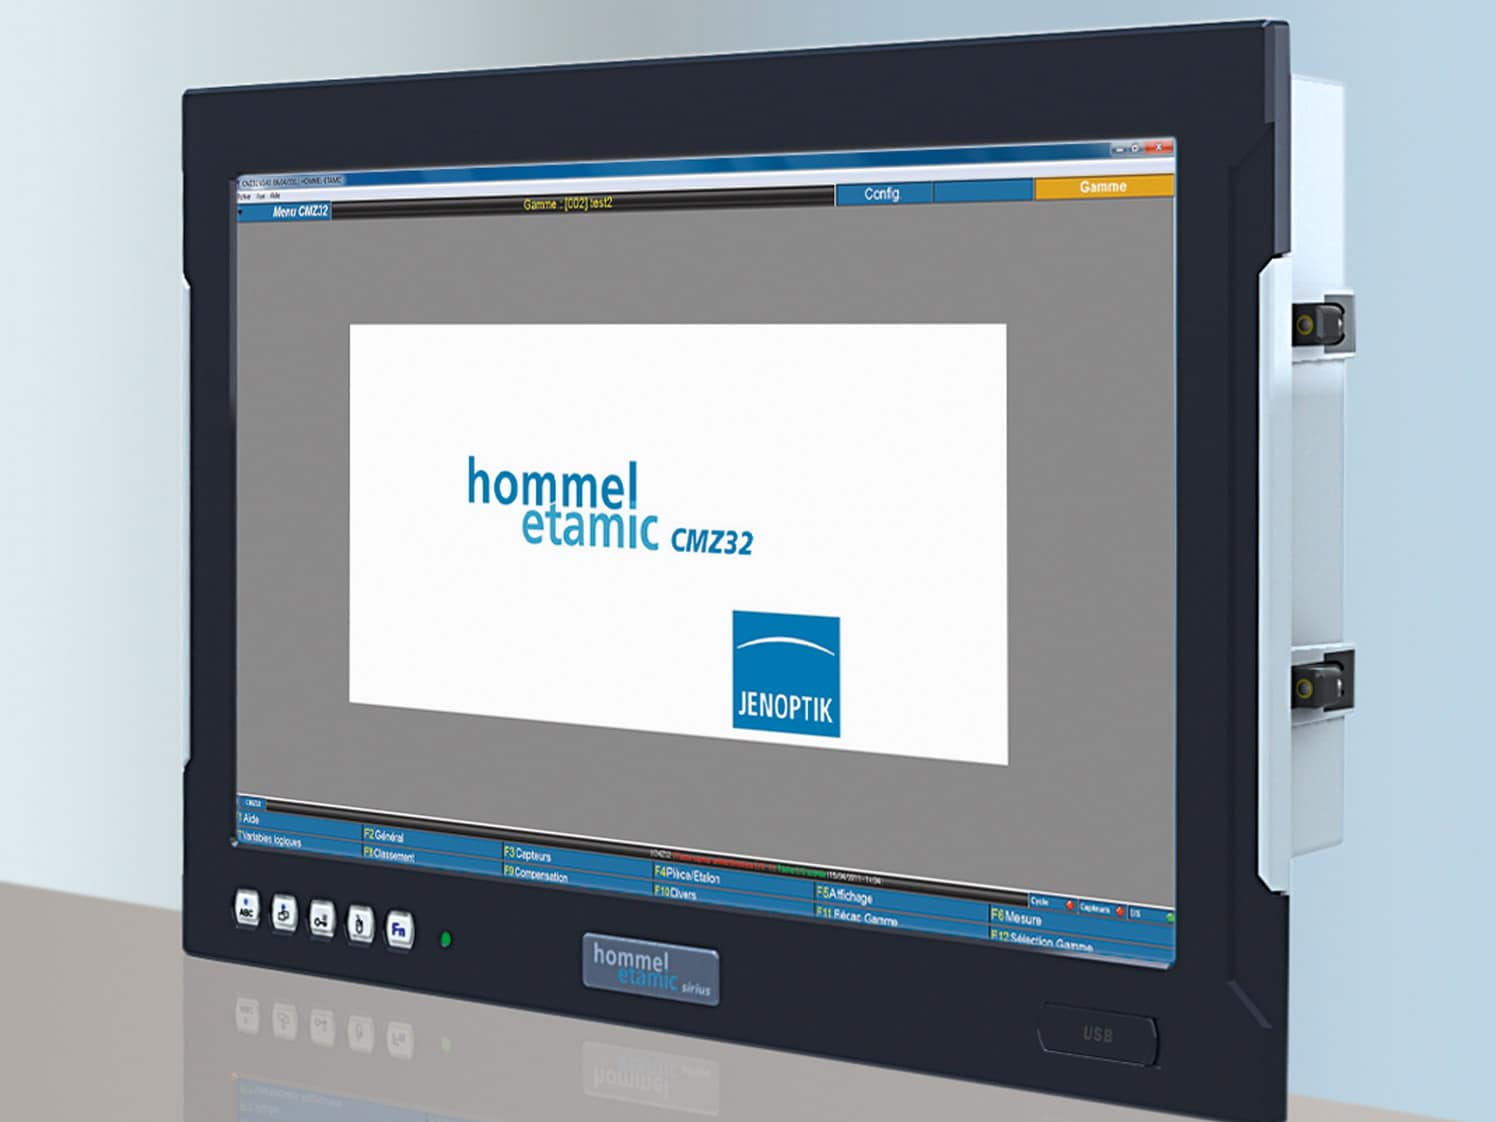 The Hommel-Etamic sirius: Rugged housing, impressive processing power and simple operation